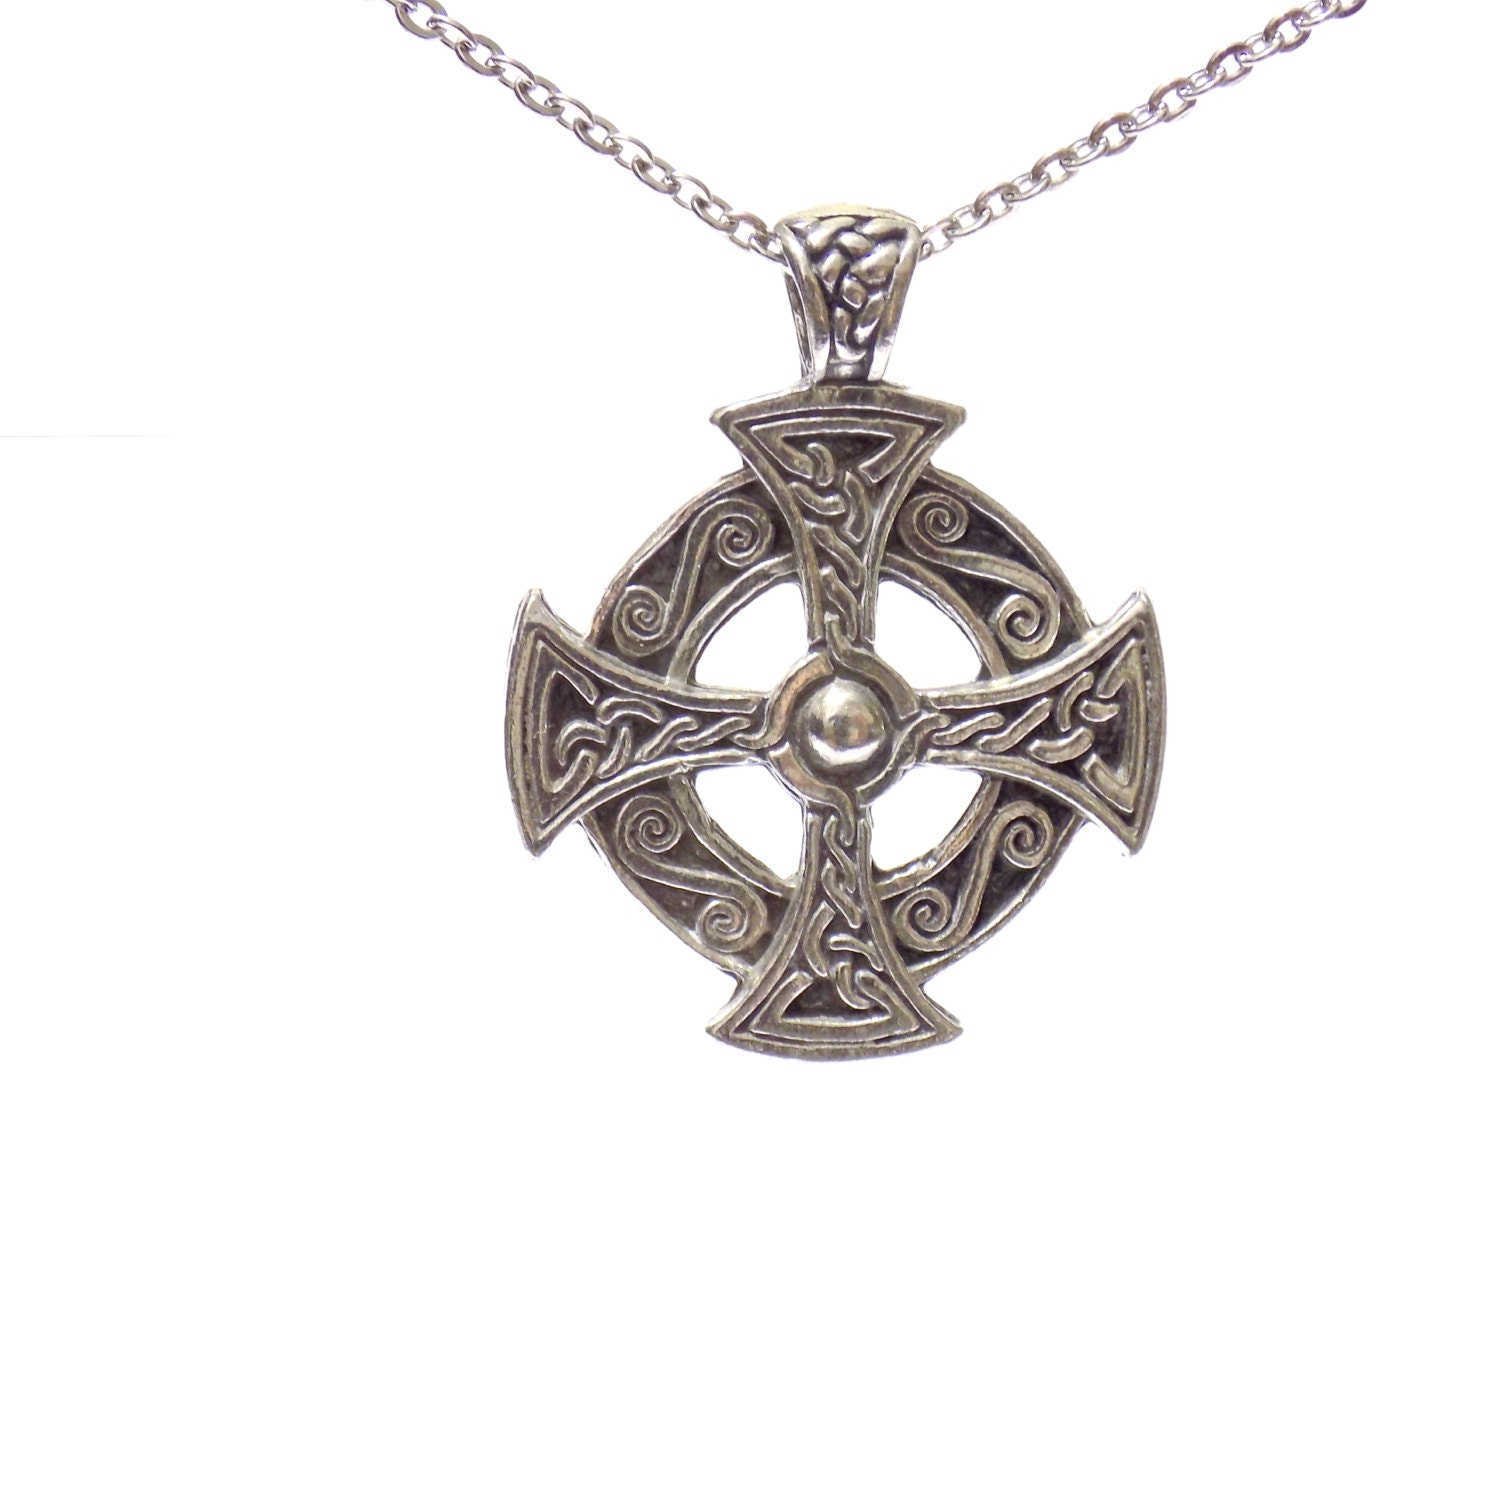 celtic cross necklace pewter jewelry celtic cross pendant. Black Bedroom Furniture Sets. Home Design Ideas